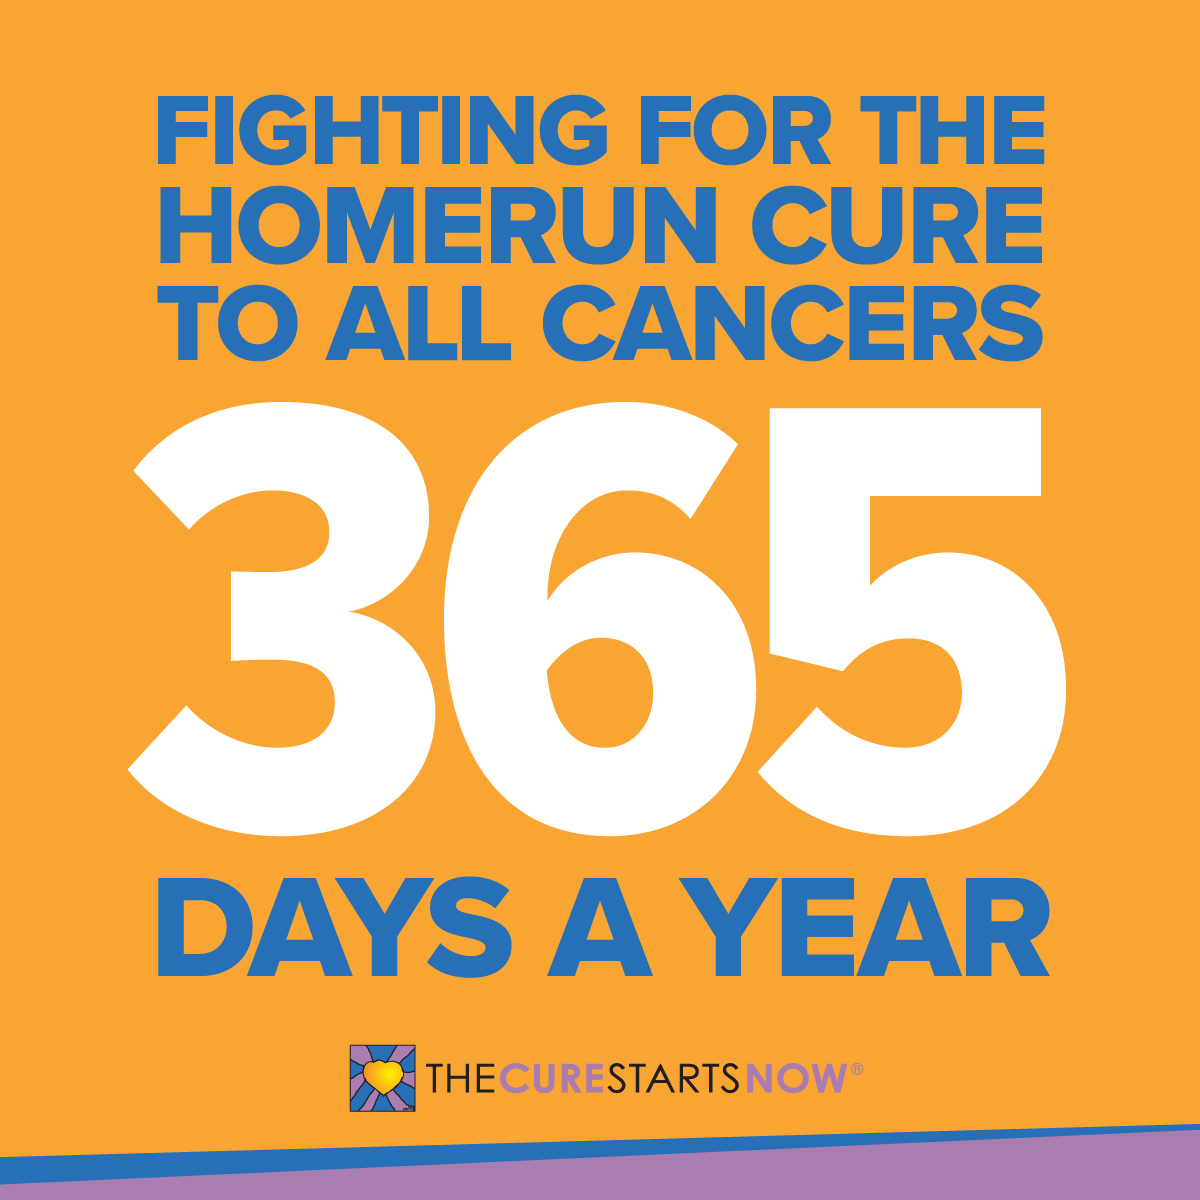 Fighting for the homerun cure to all cancers 365 days a year